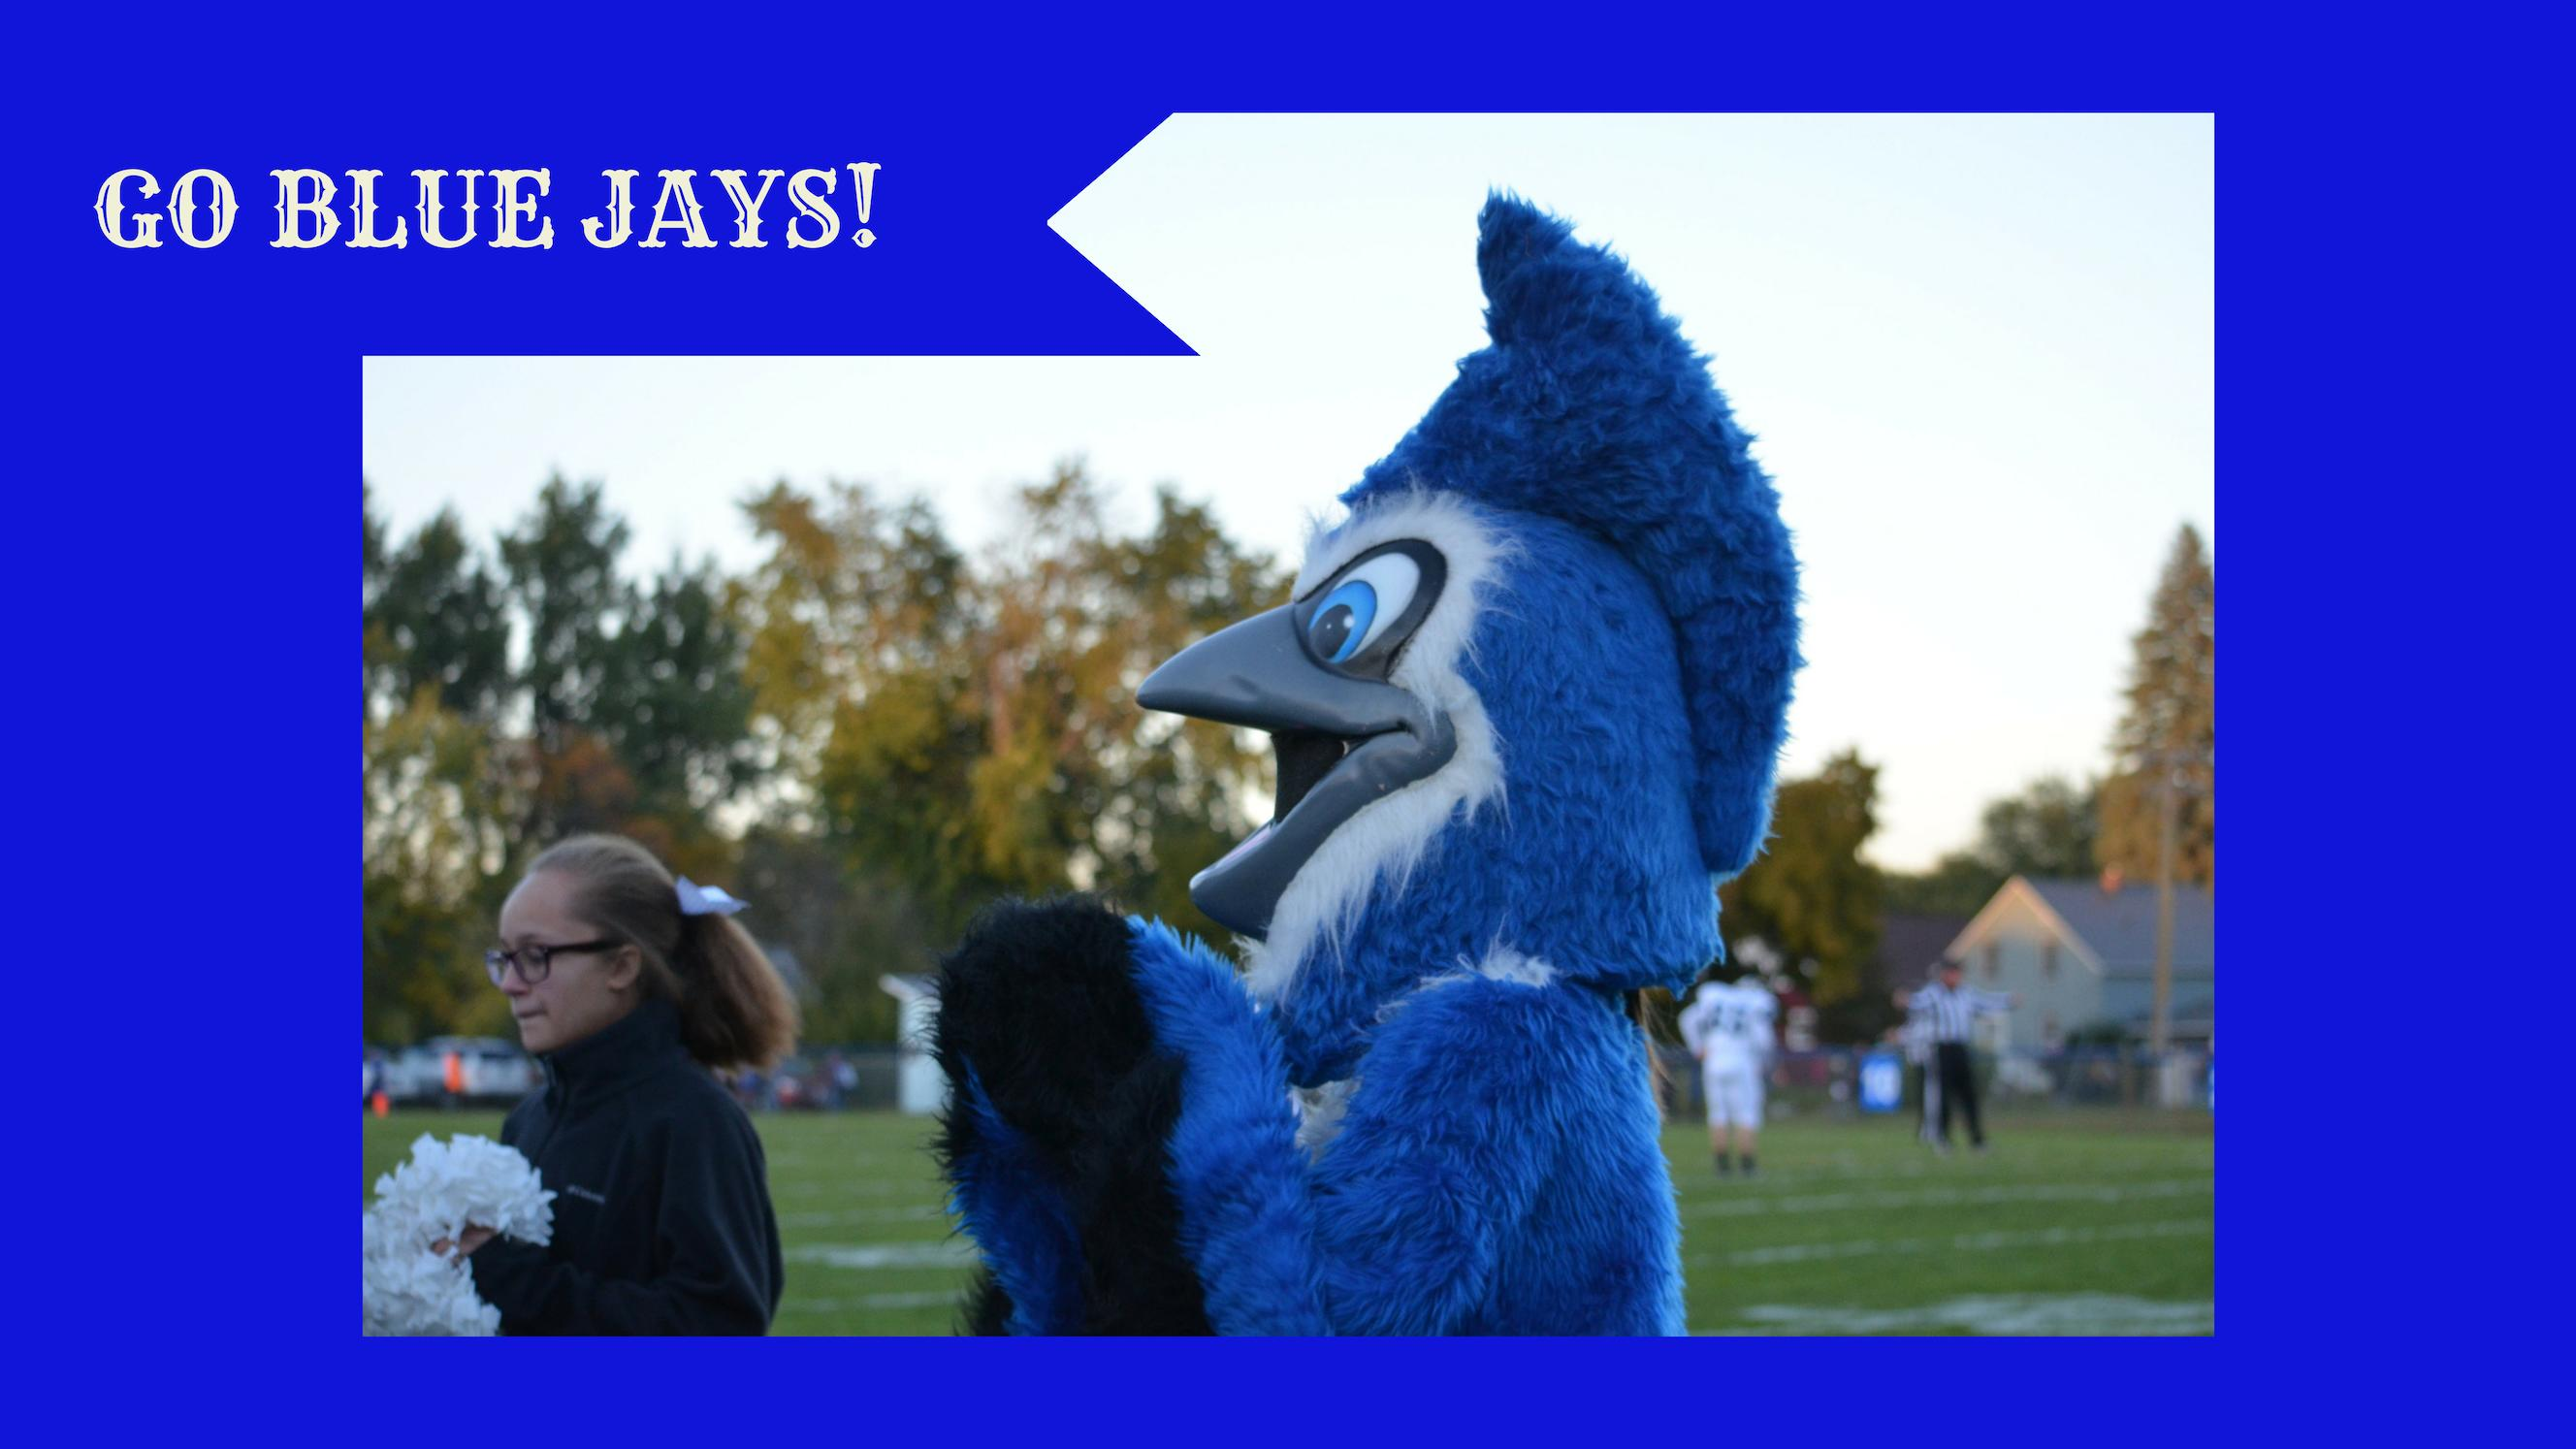 Blue Jay Mascot-Go Blue Jays